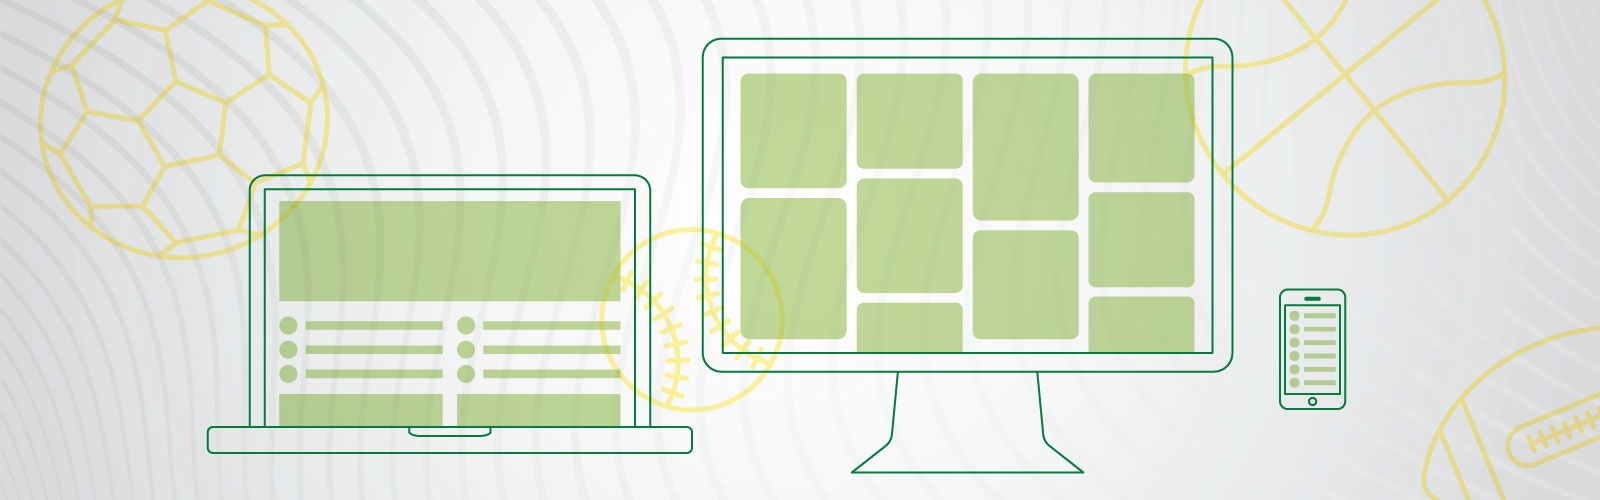 Green iconography of a computer monitor and laptop against a light gray background